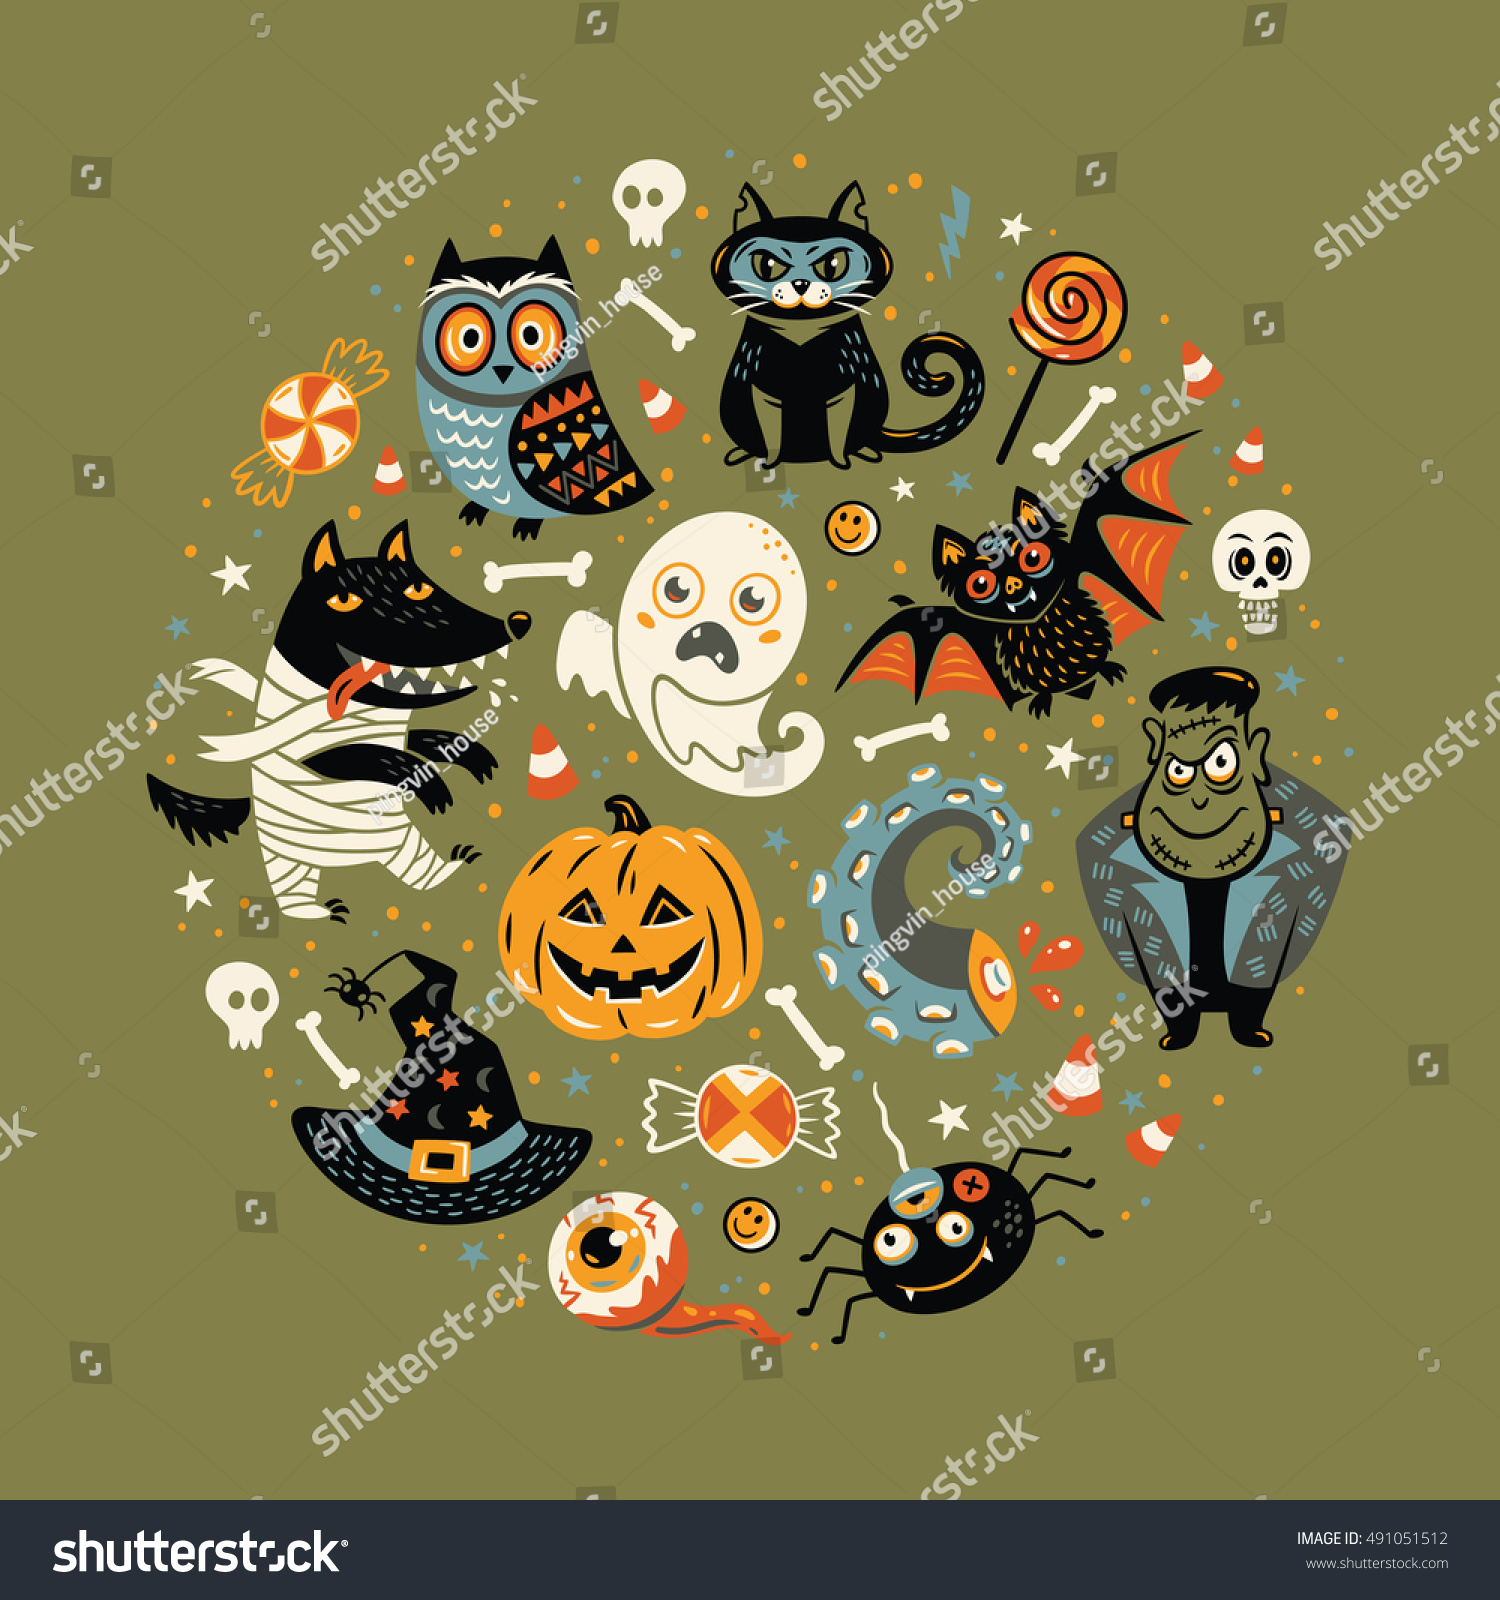 Halloween poster greeting card cartoon characters stock vector halloween poster or greeting card with cartoon characters in a circular frame green background kristyandbryce Gallery